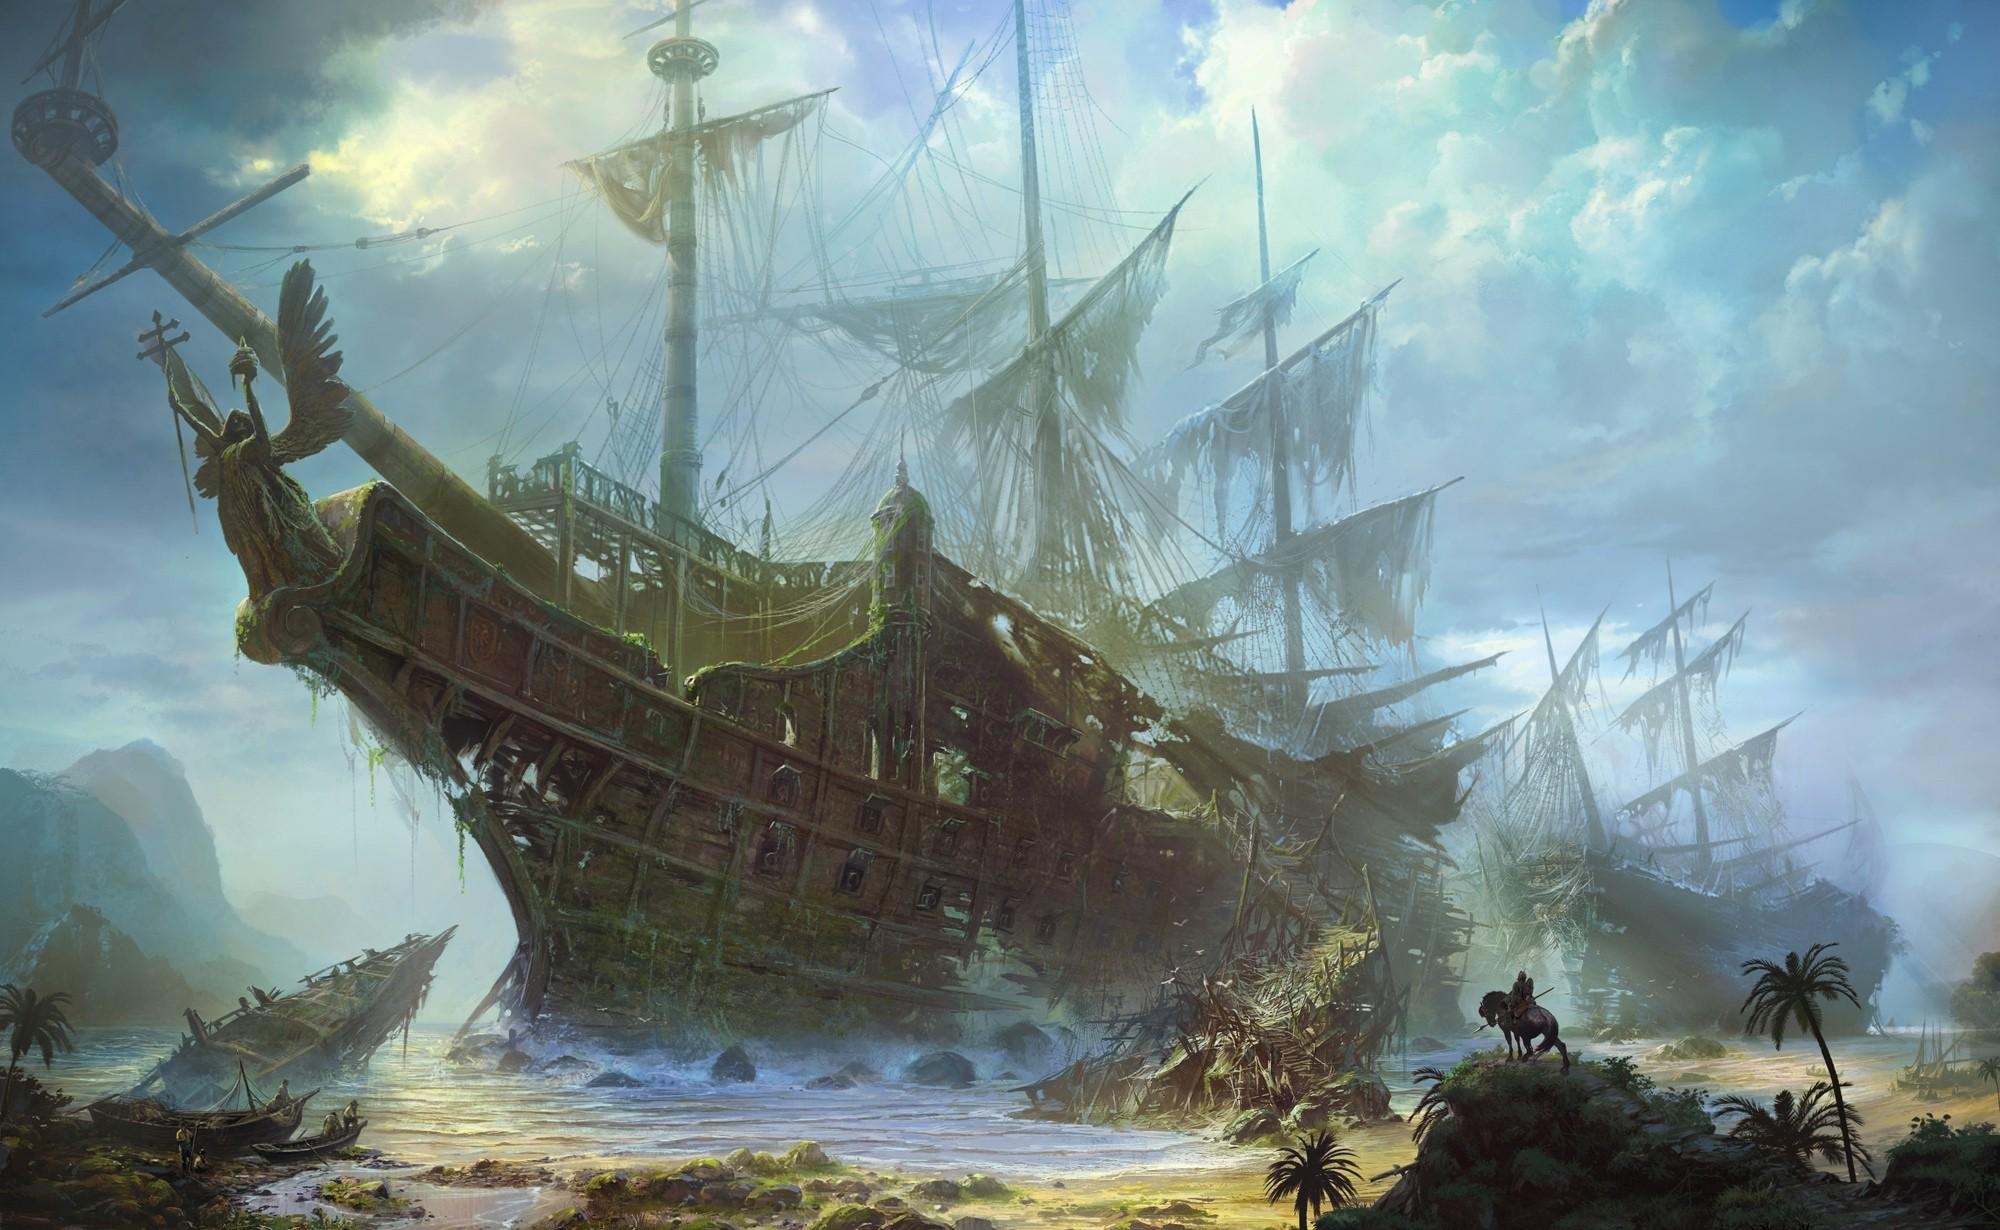 62224 download wallpaper Fantasy, Ships, Old, Wreckage, Detritus, Shore, Bank, Sea, Sky, Clouds screensavers and pictures for free